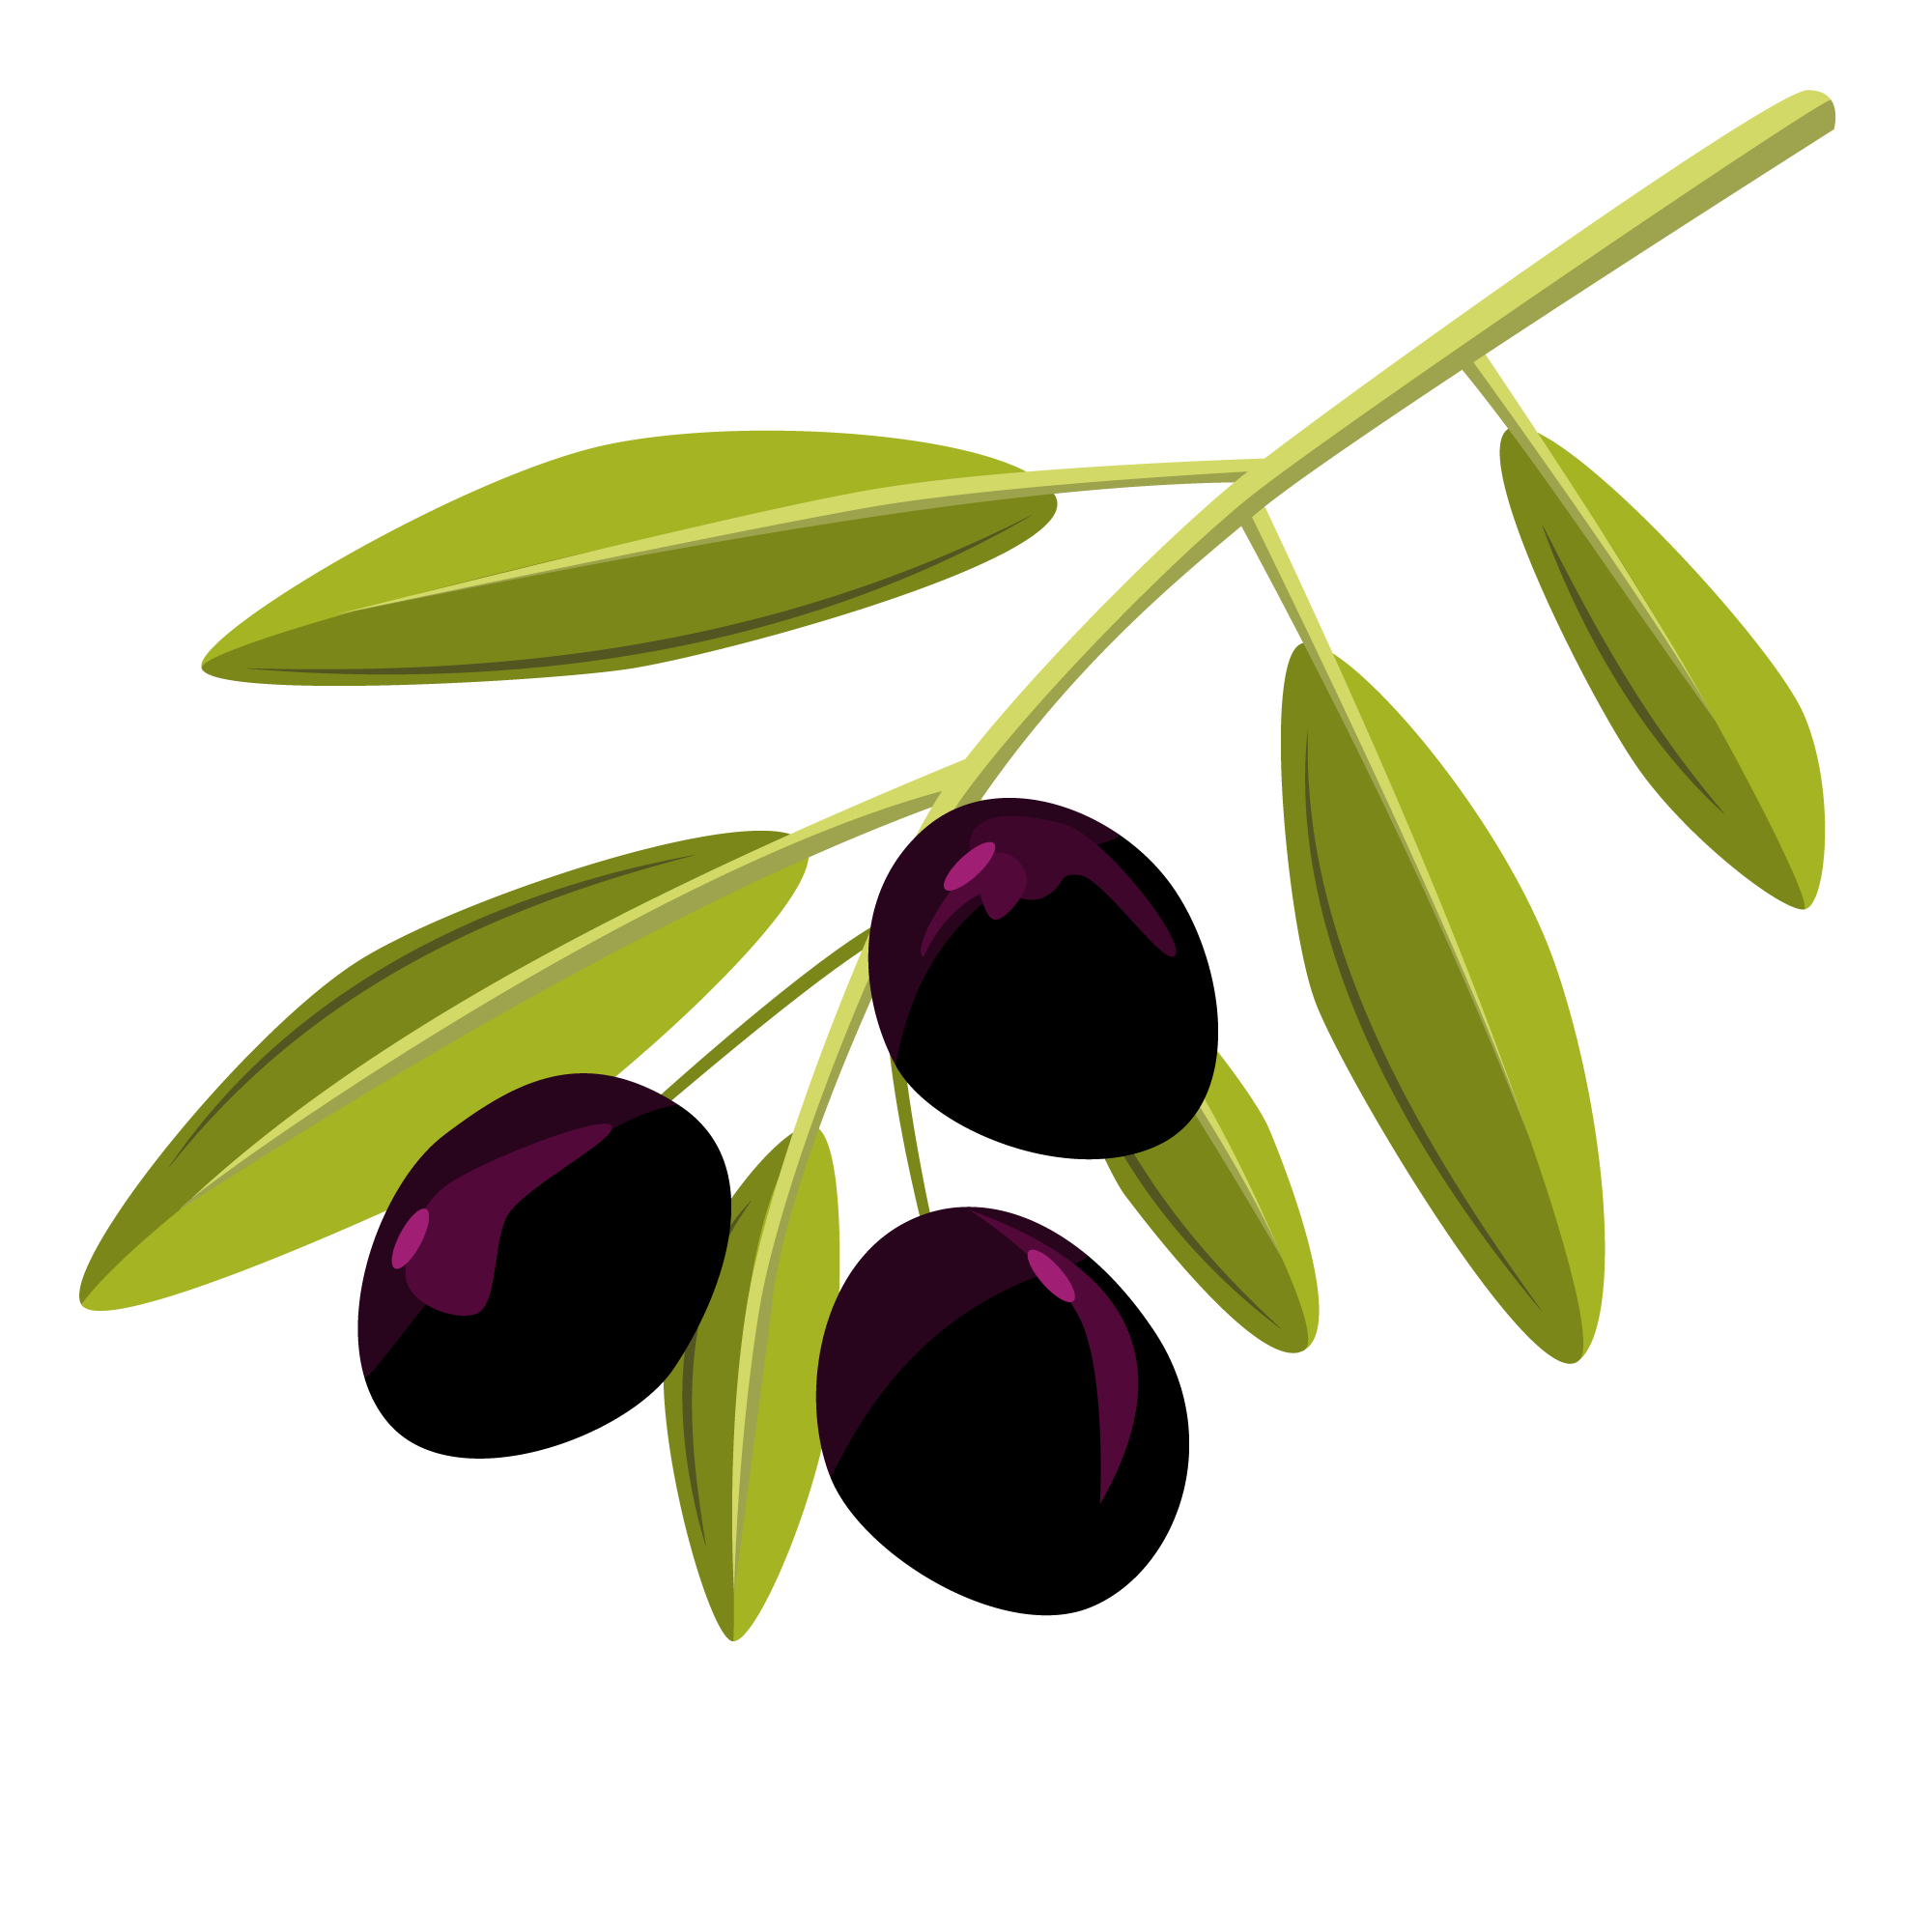 vector-olive